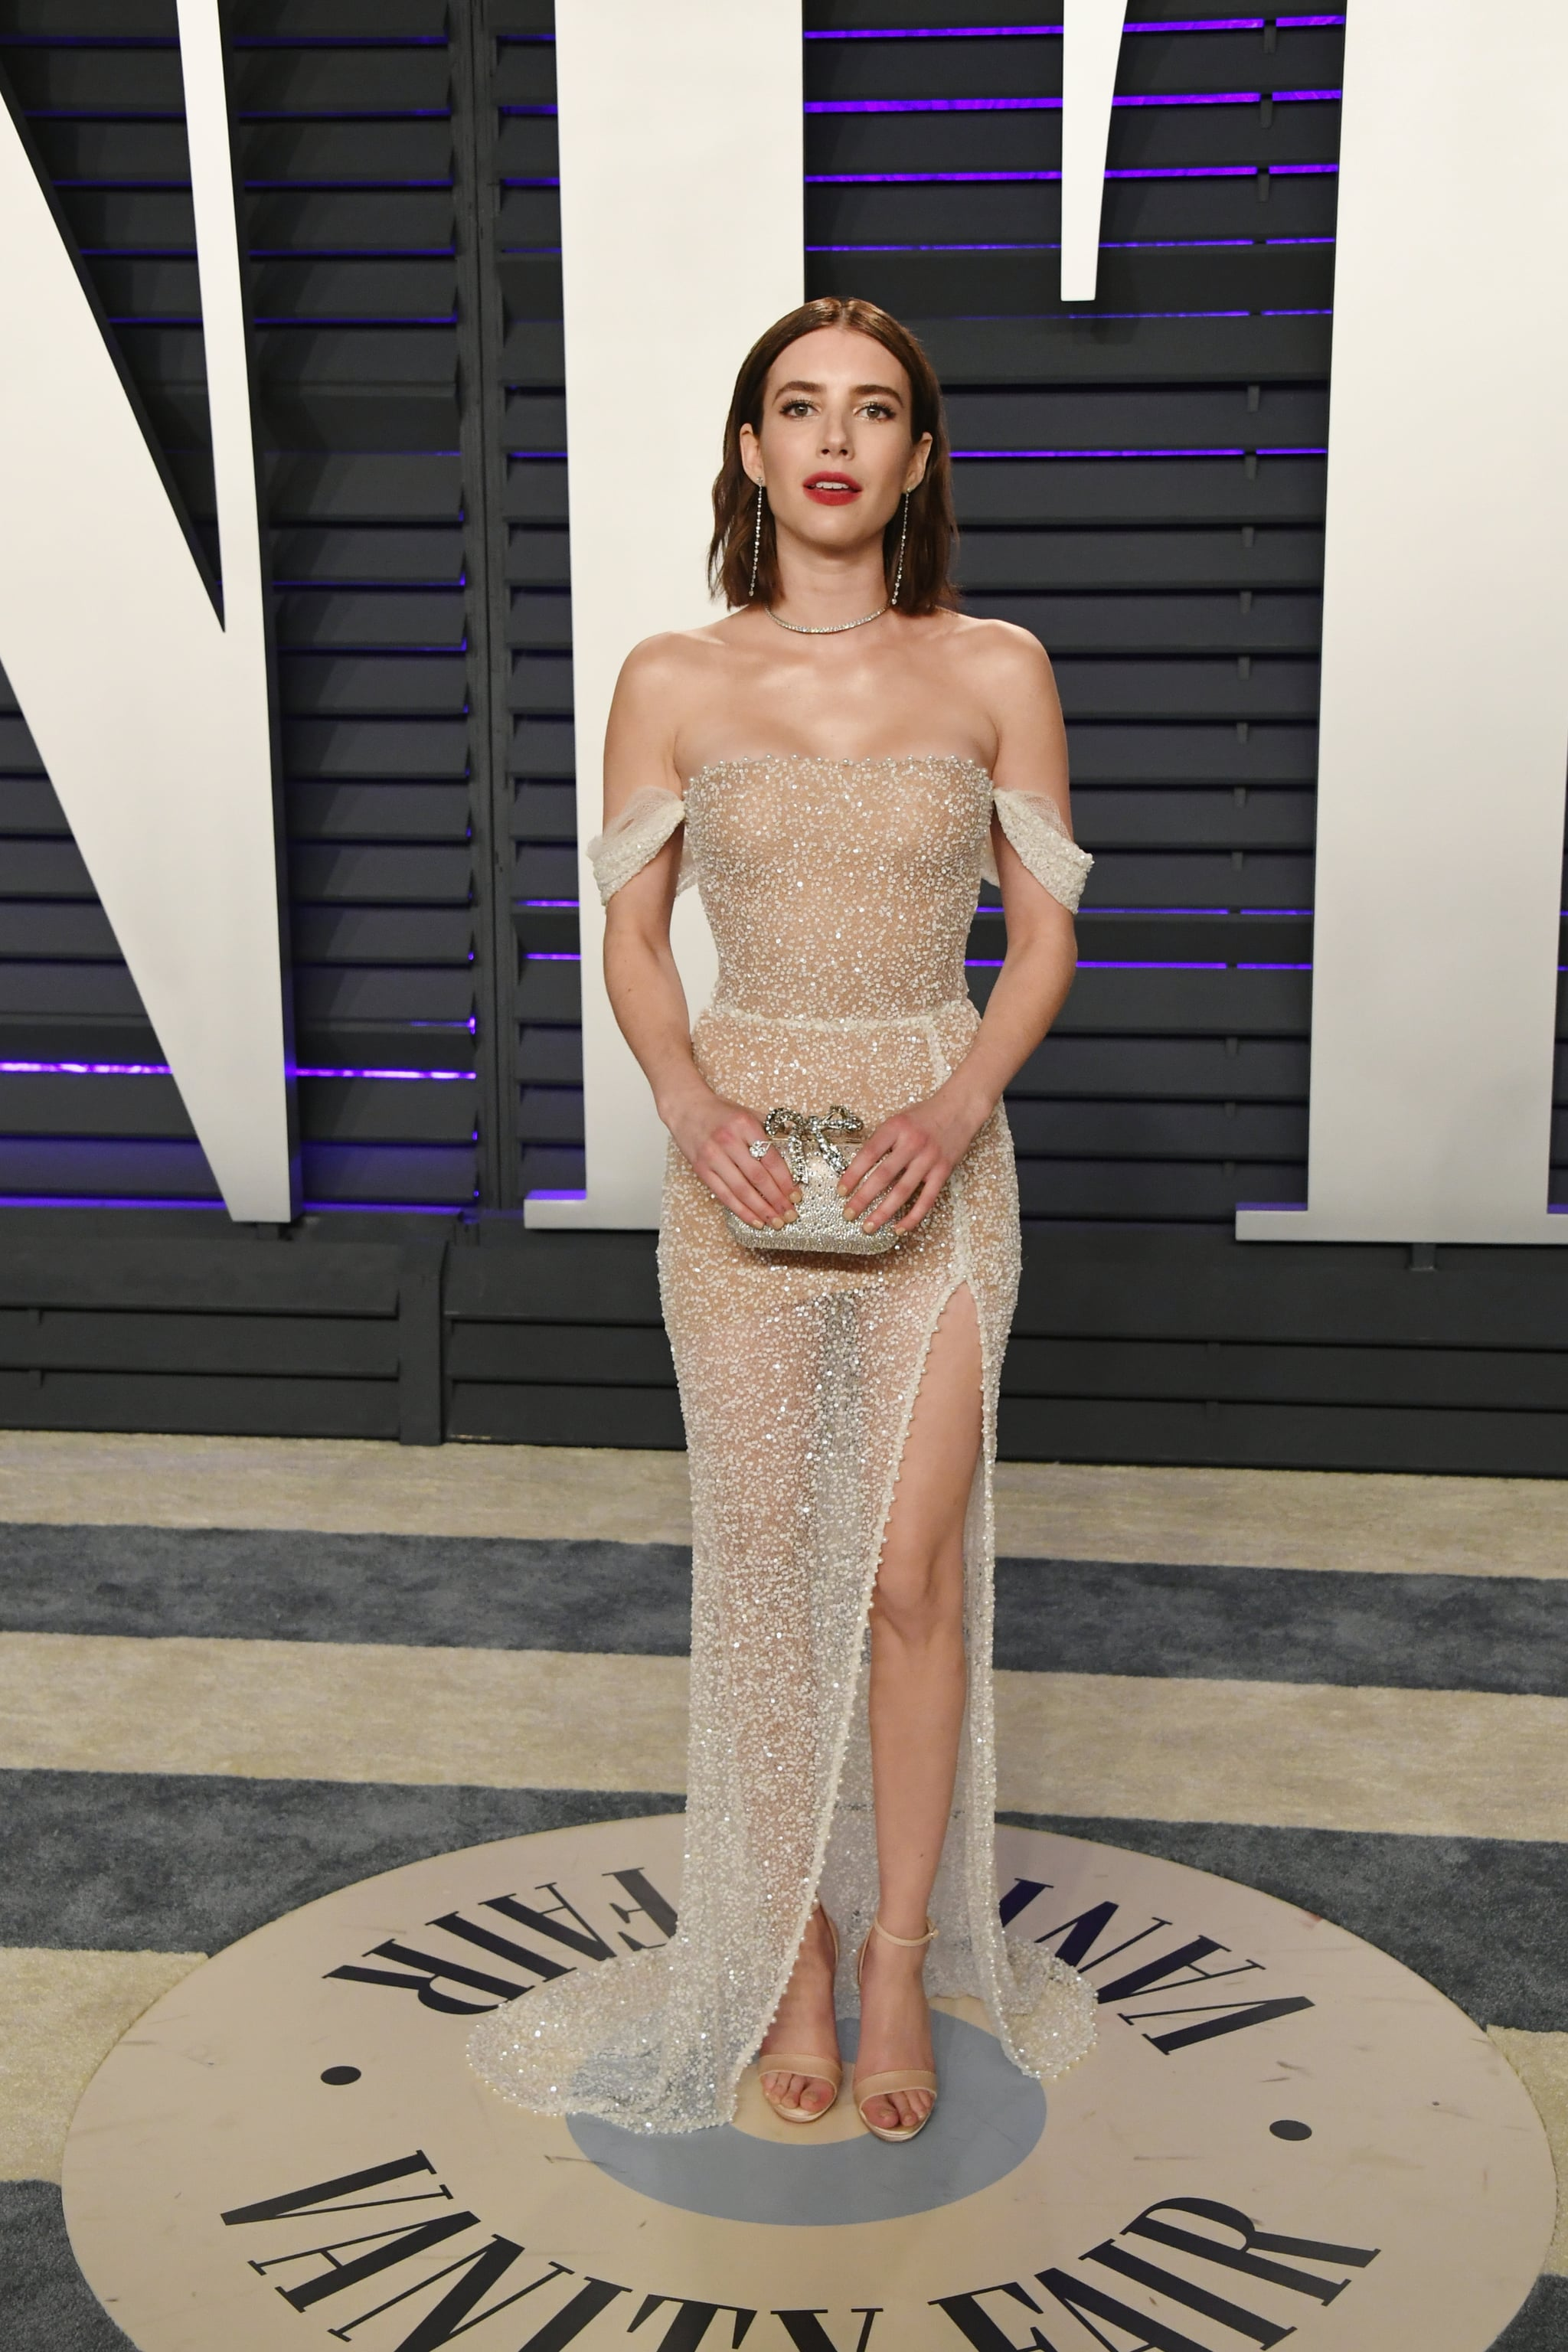 Emma Roberts At The 2019 Vanity Fair Oscar Party The Party Doesn T Start Until You Ve Seen These Oscars Afterparty Dresses Popsugar Fashion Photo 58